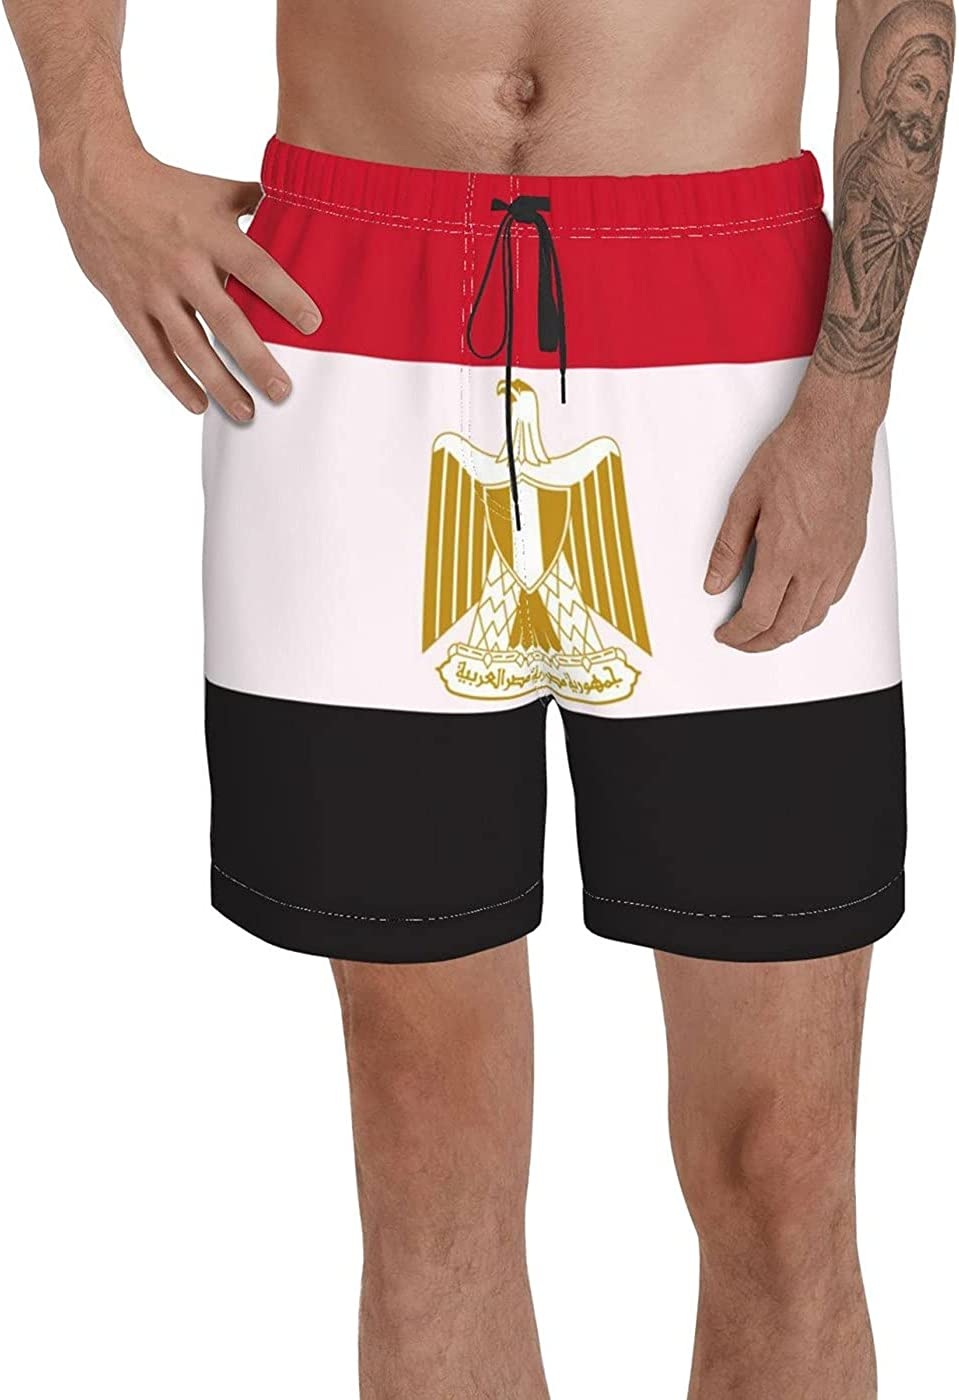 Count Egypt Flag Men's 3D Printed Funny Summer Quick Dry Swim Short Board Shorts with